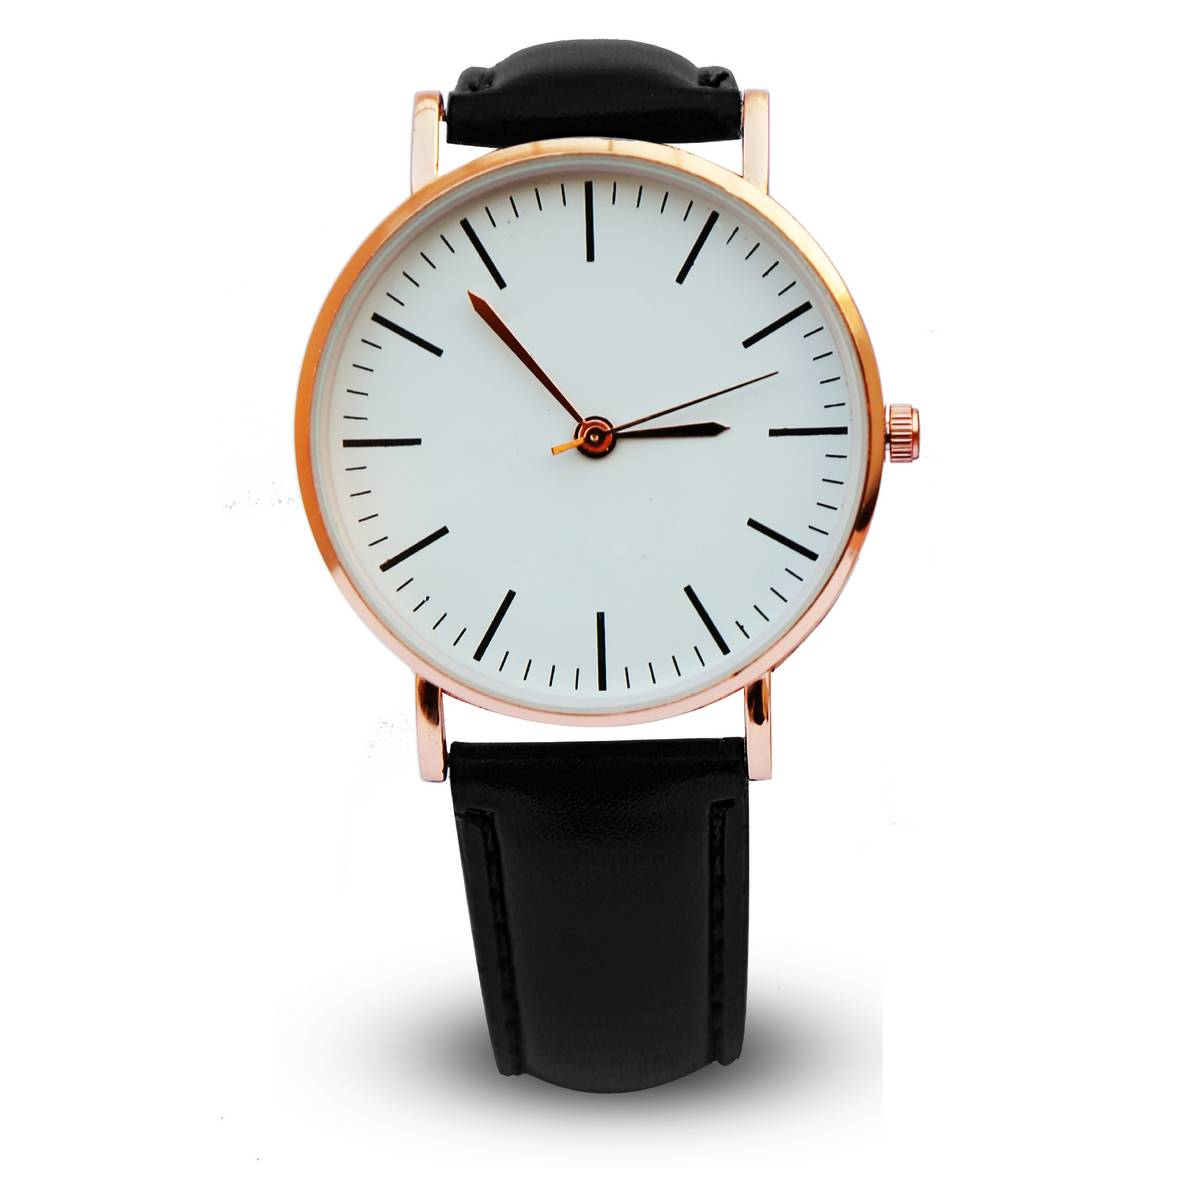 classic design analog watch leather strap watches in nice packaging watch for man / boys / girls